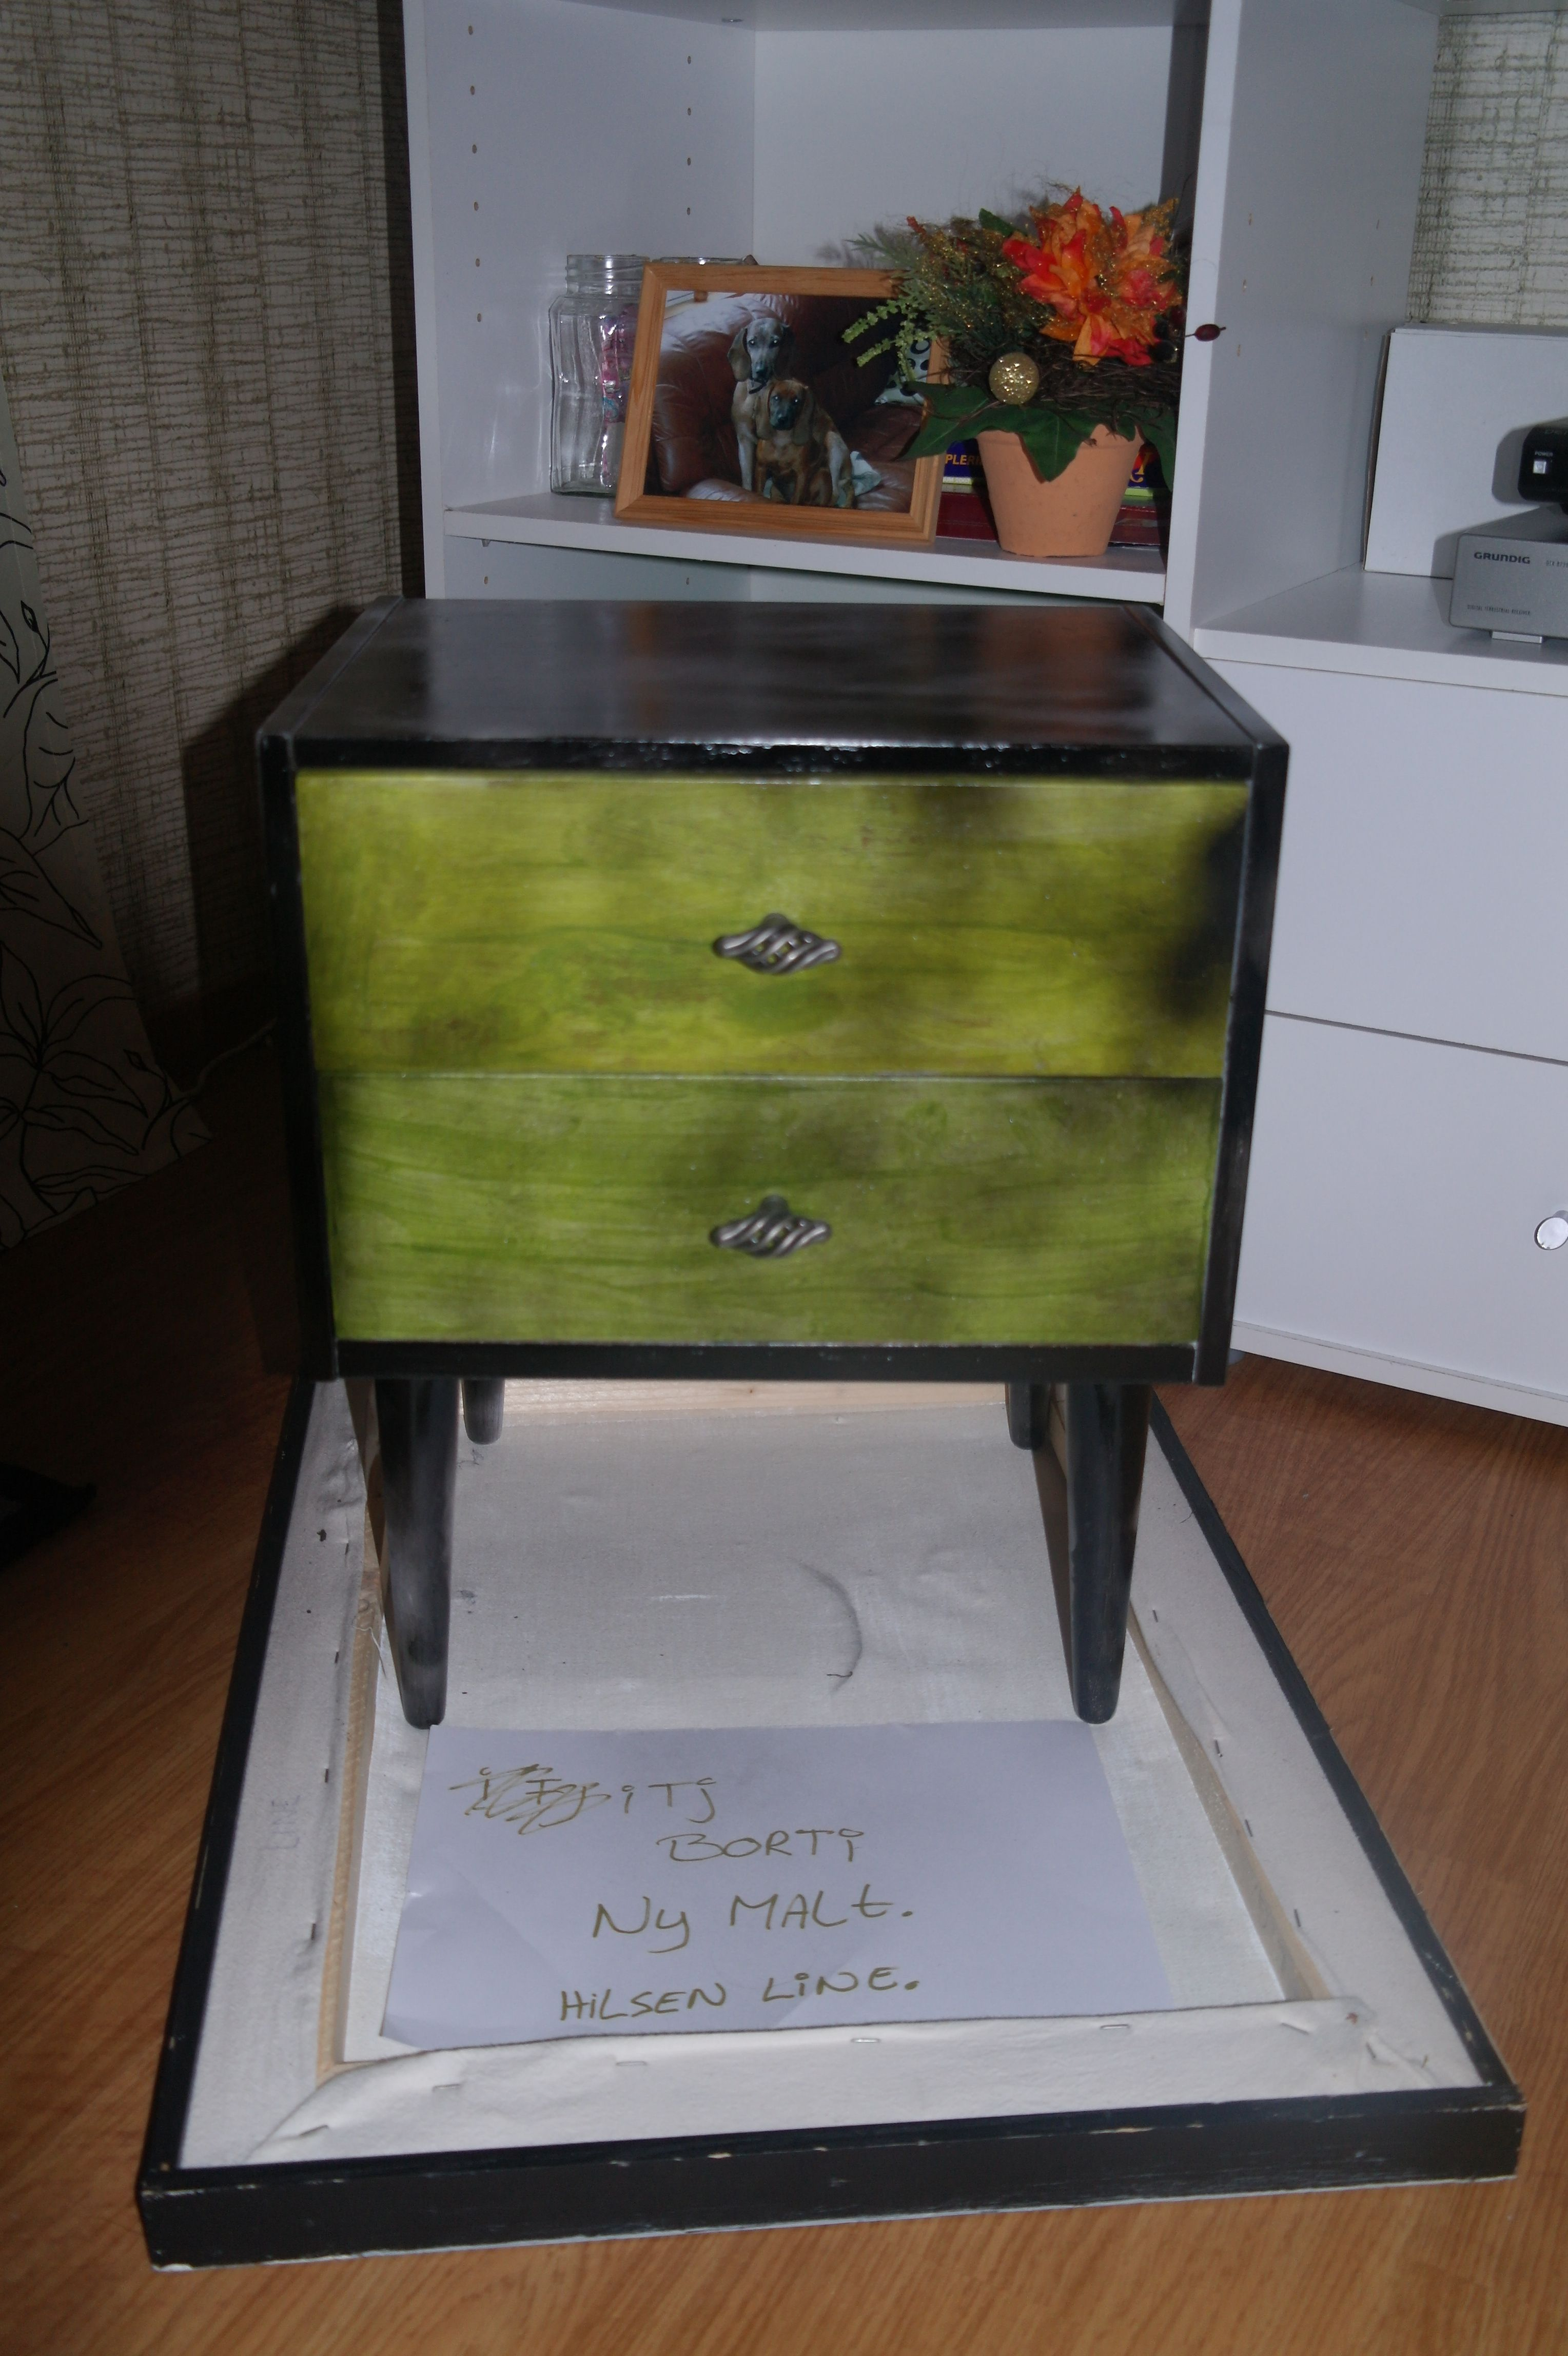 This is the result of my bedside table, what do you think about this?